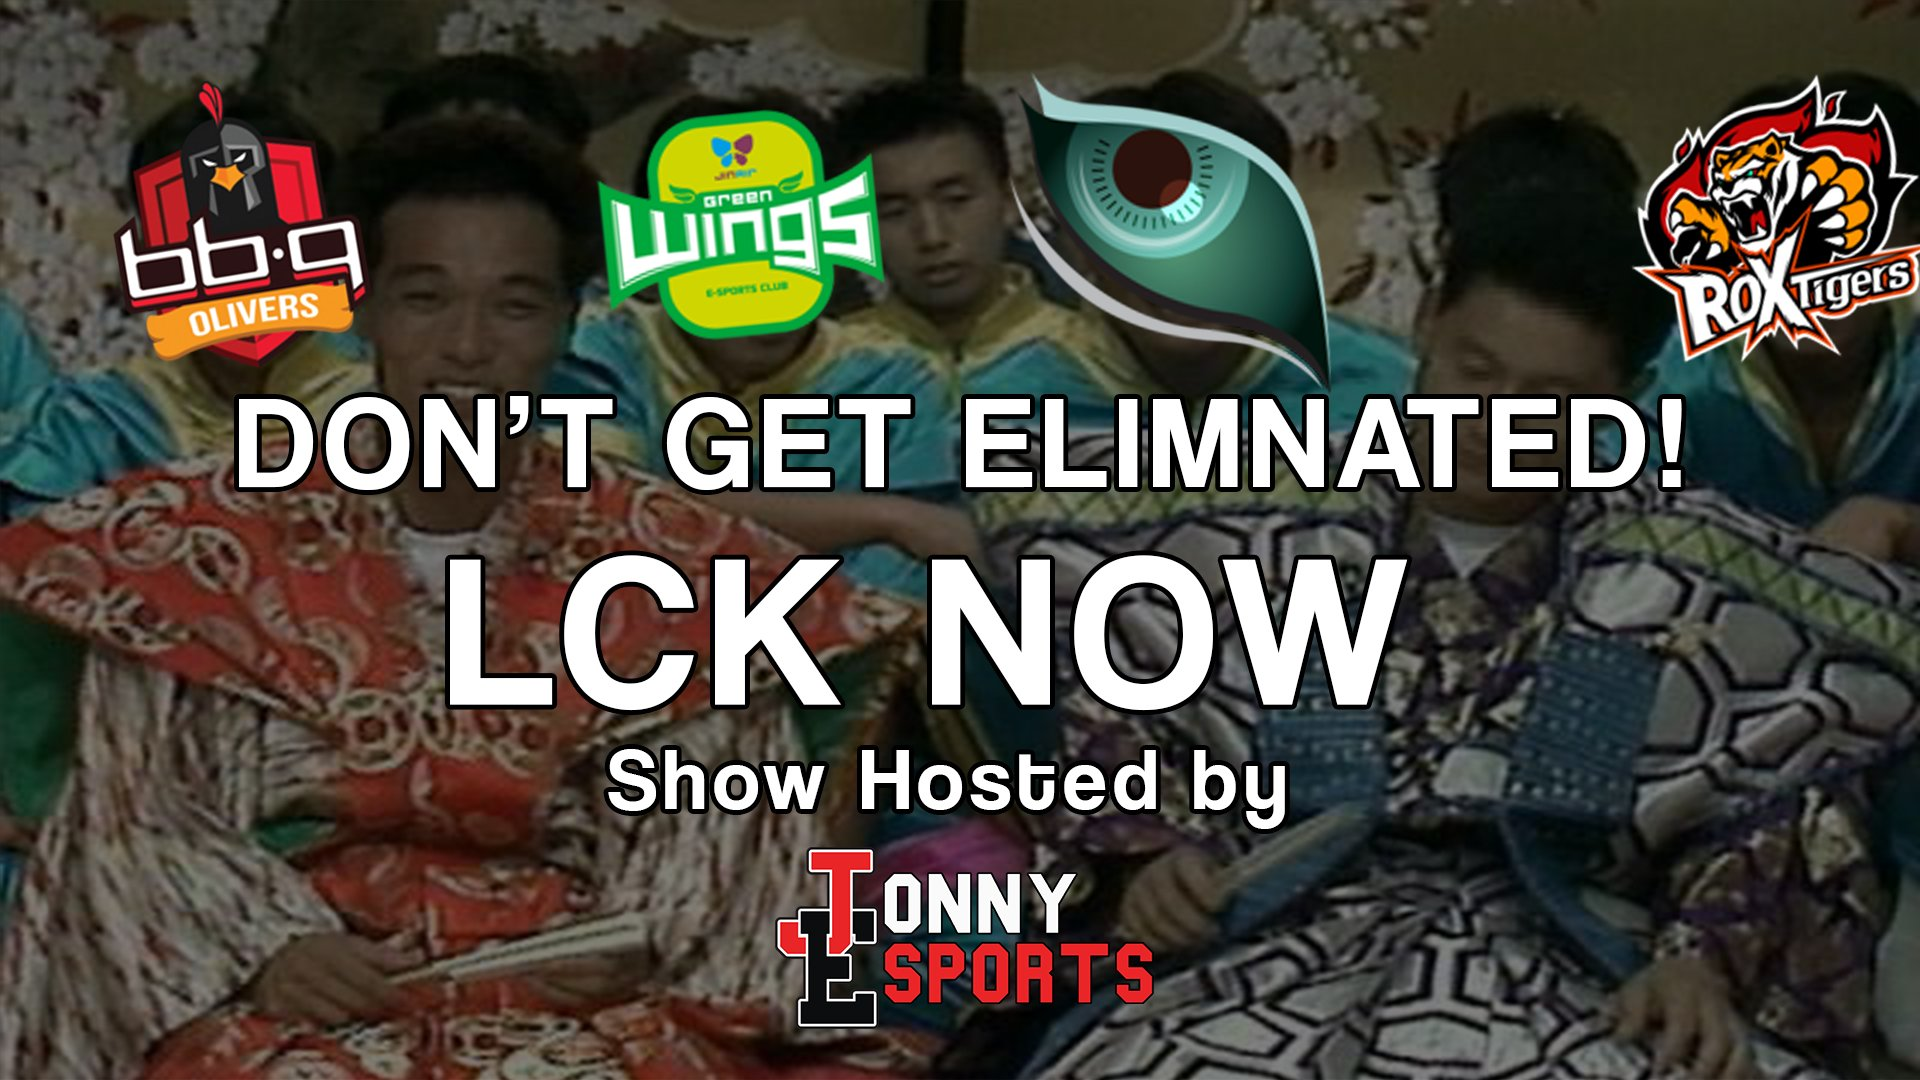 lck-now-dont-get-eliminated